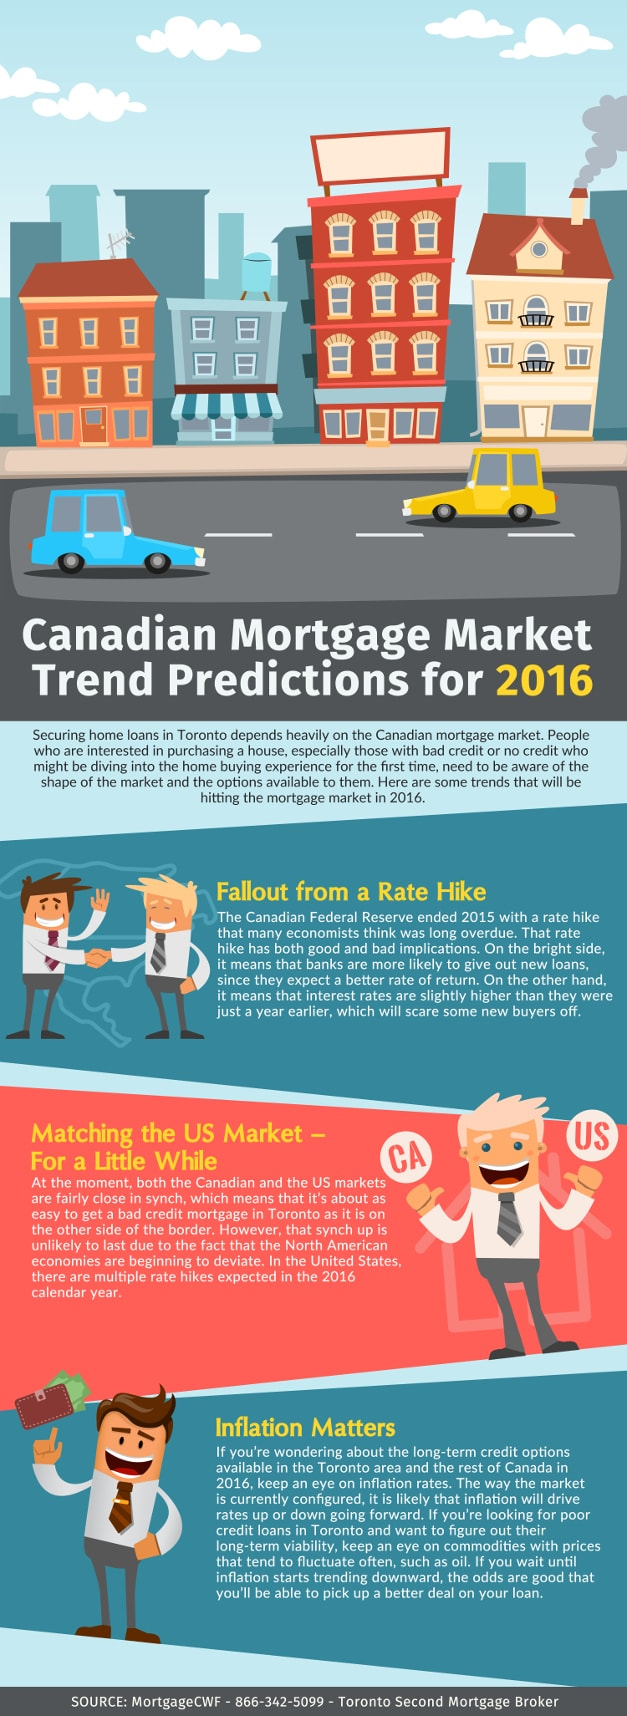 Canadian Mortgage Market Trend Predictions for 2016